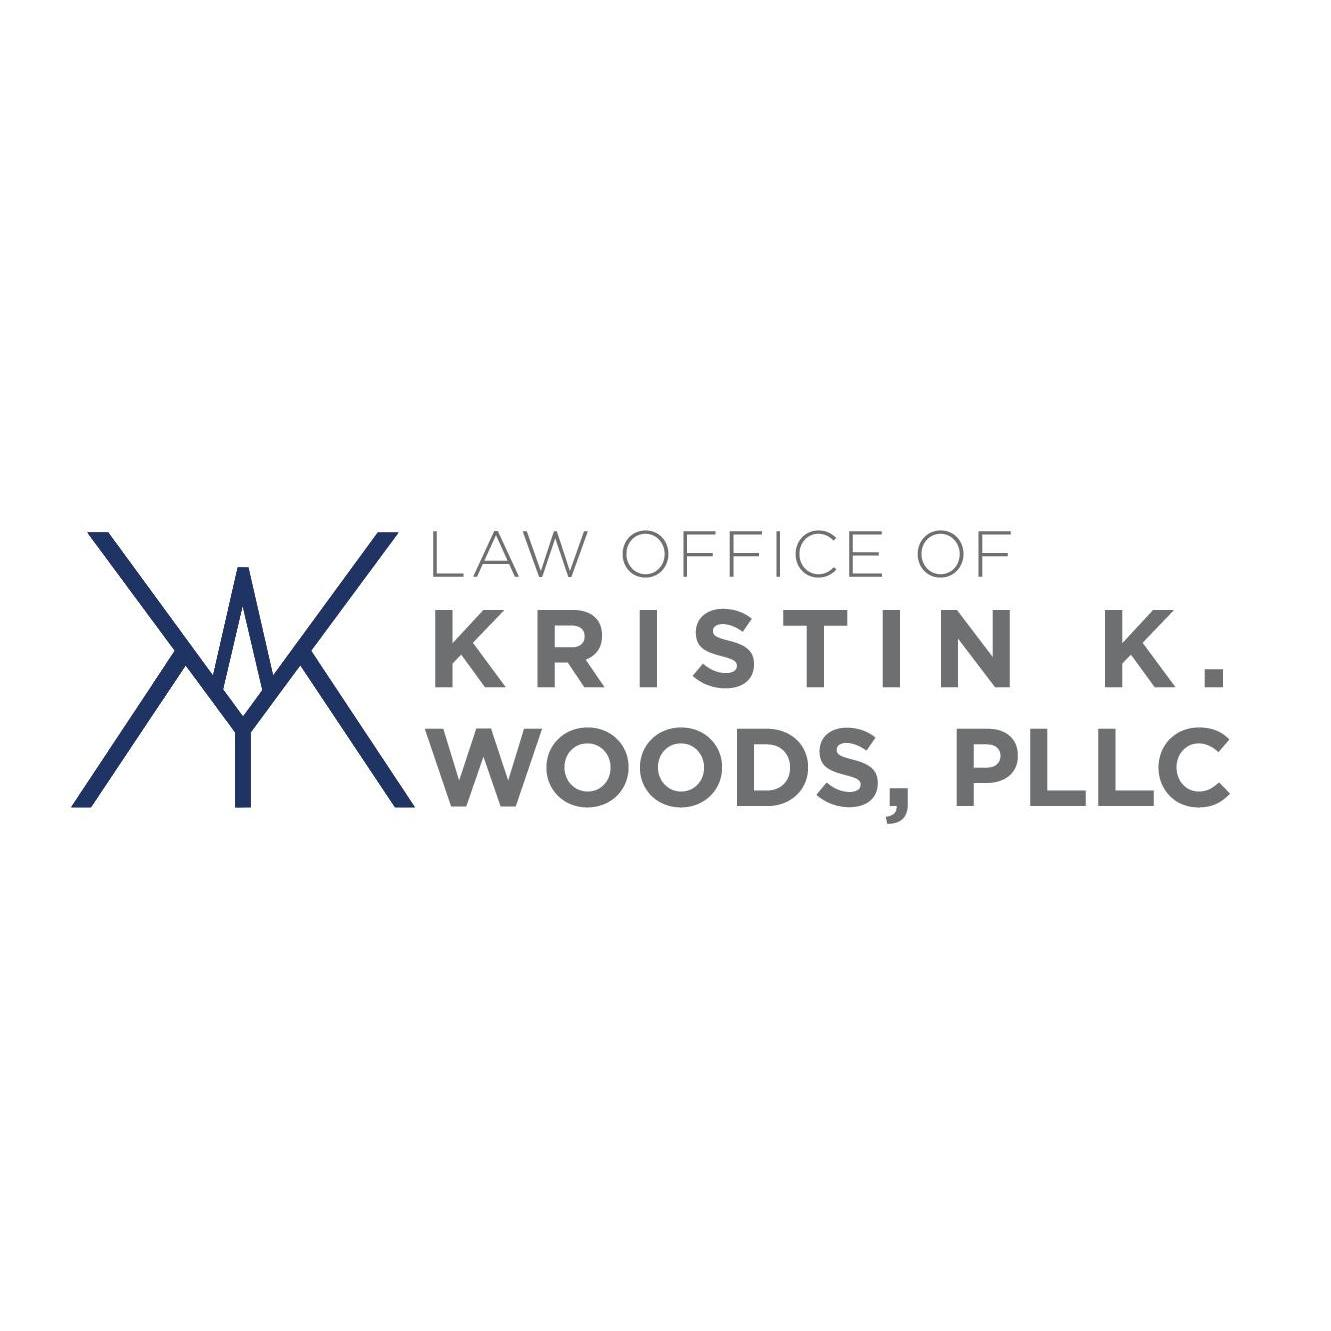 Law Office of Kristin K. Woods, PLLC